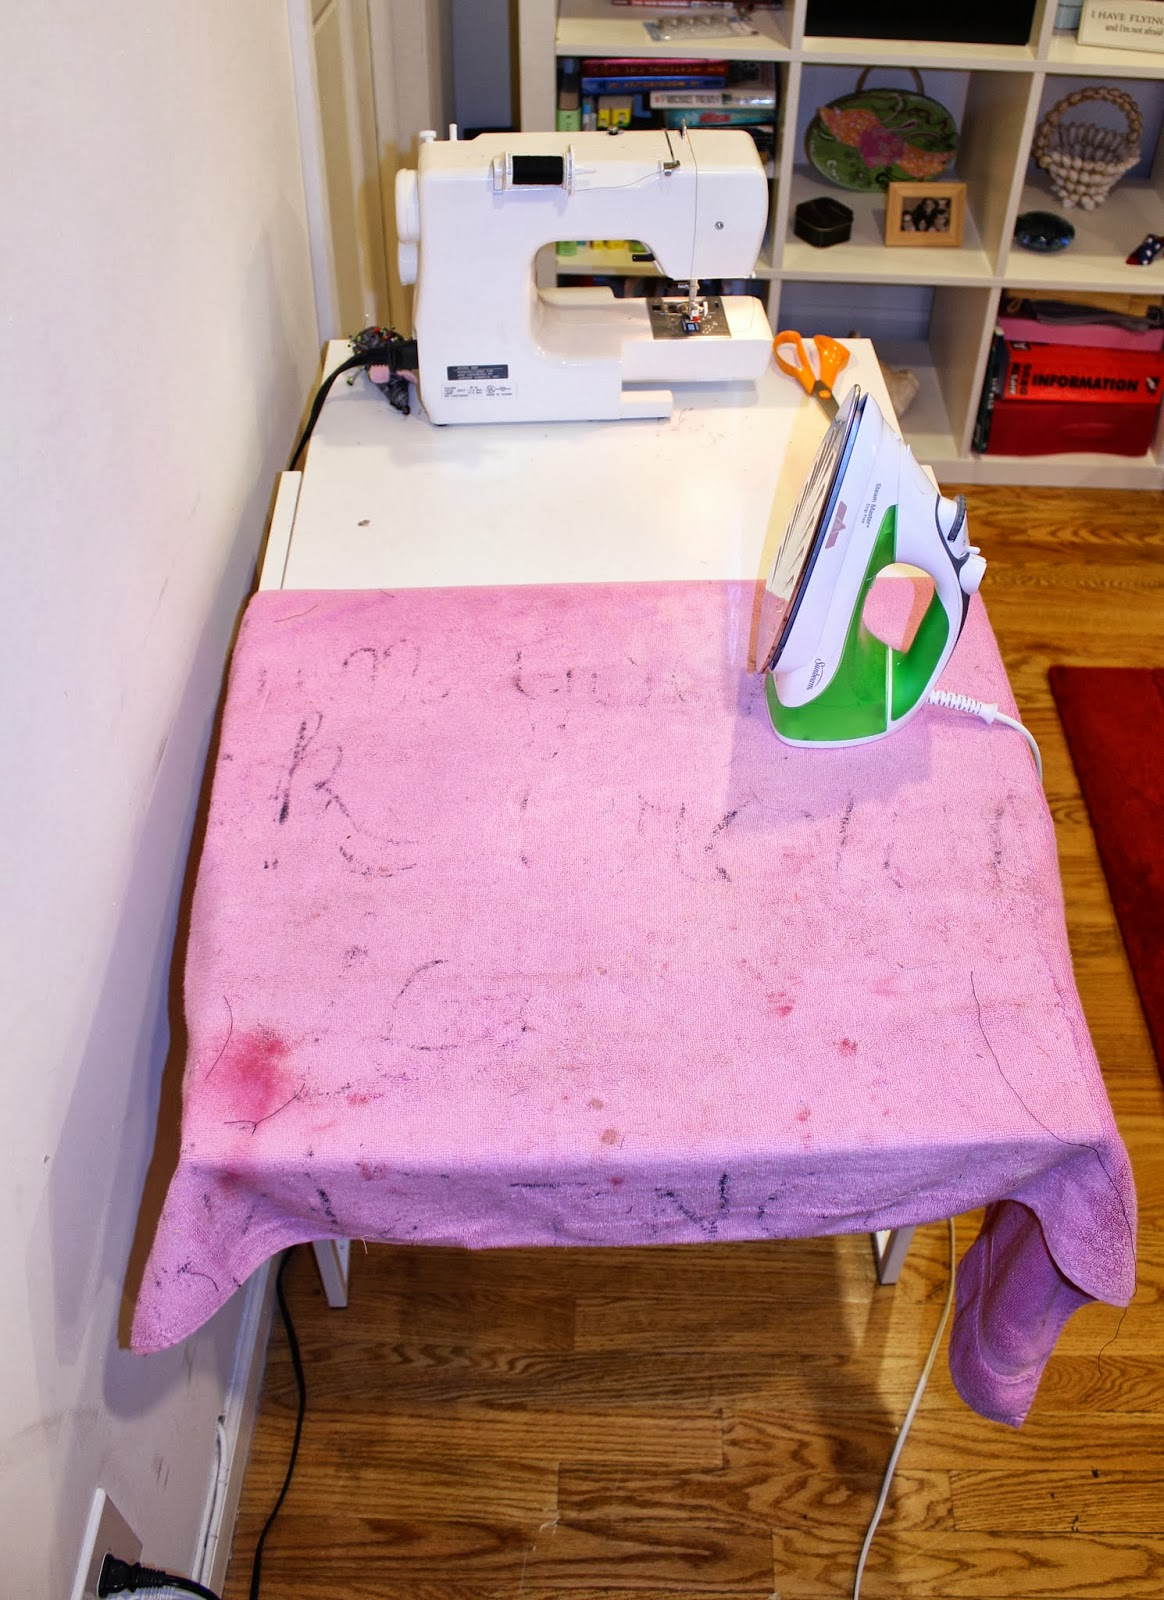 I Use An Old Towel Over The Table As An Ironing Mat. Iu0027m Sure Itu0027s Not A  Great Idea And Sometimes The Towel Is Stuck To The Table And Leaves Chunks  Of ...